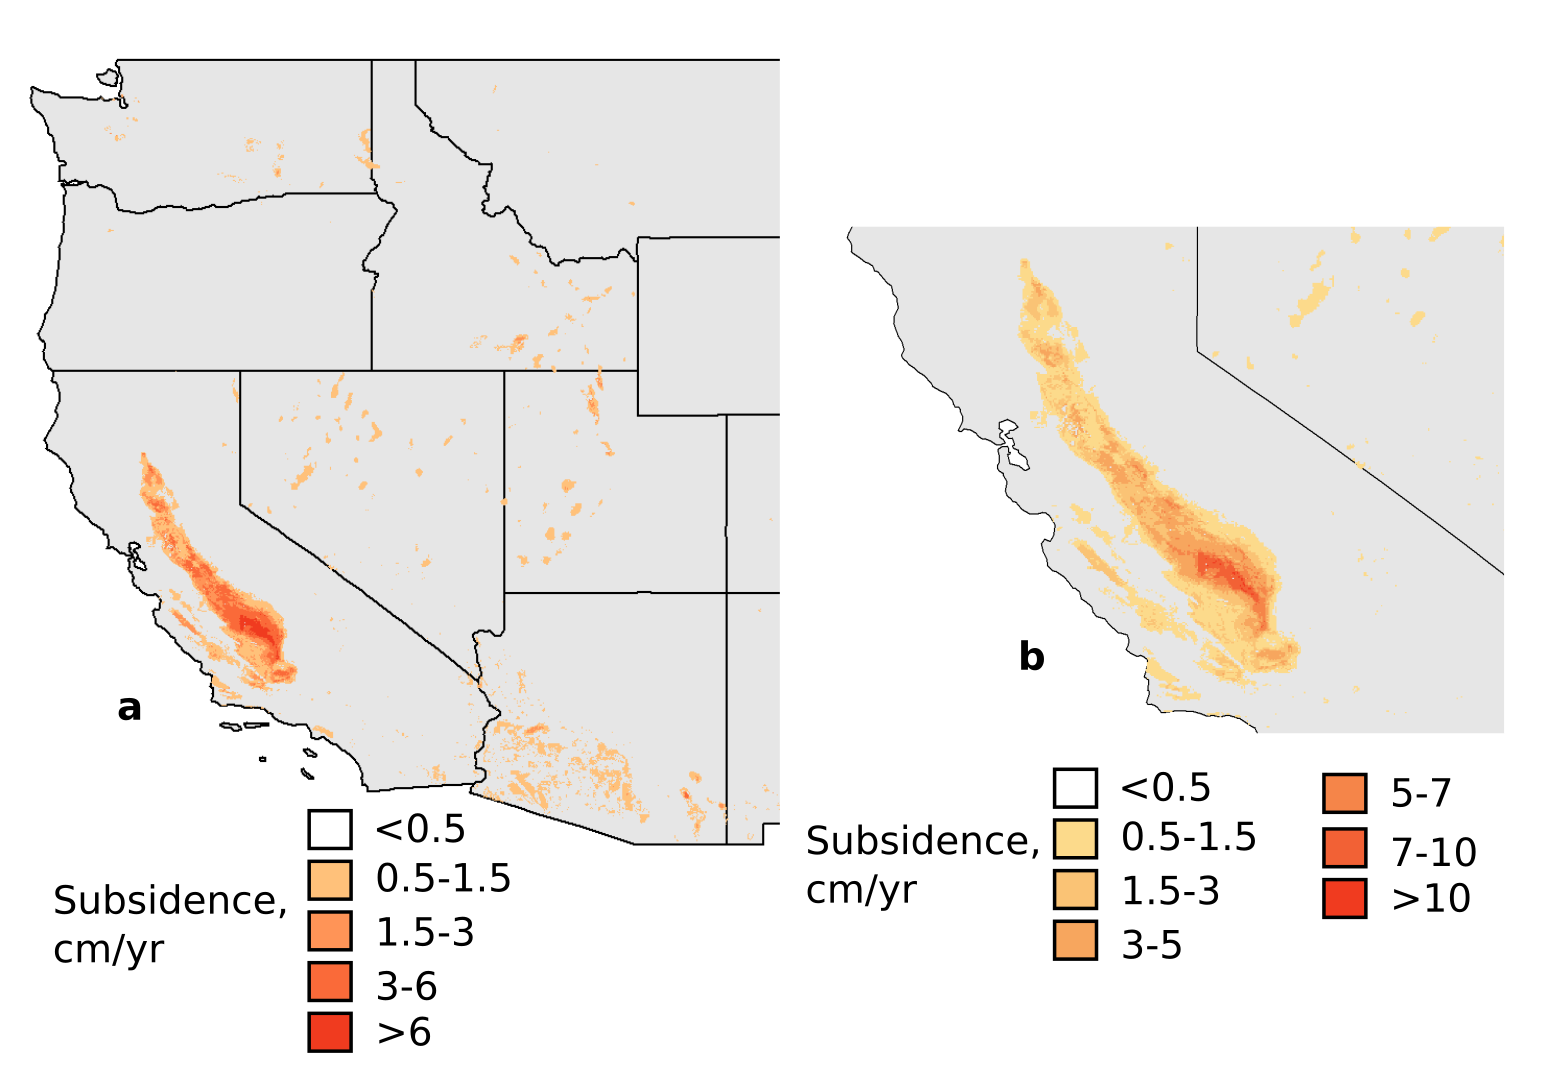 Images indicating land subsidence in western U.S.